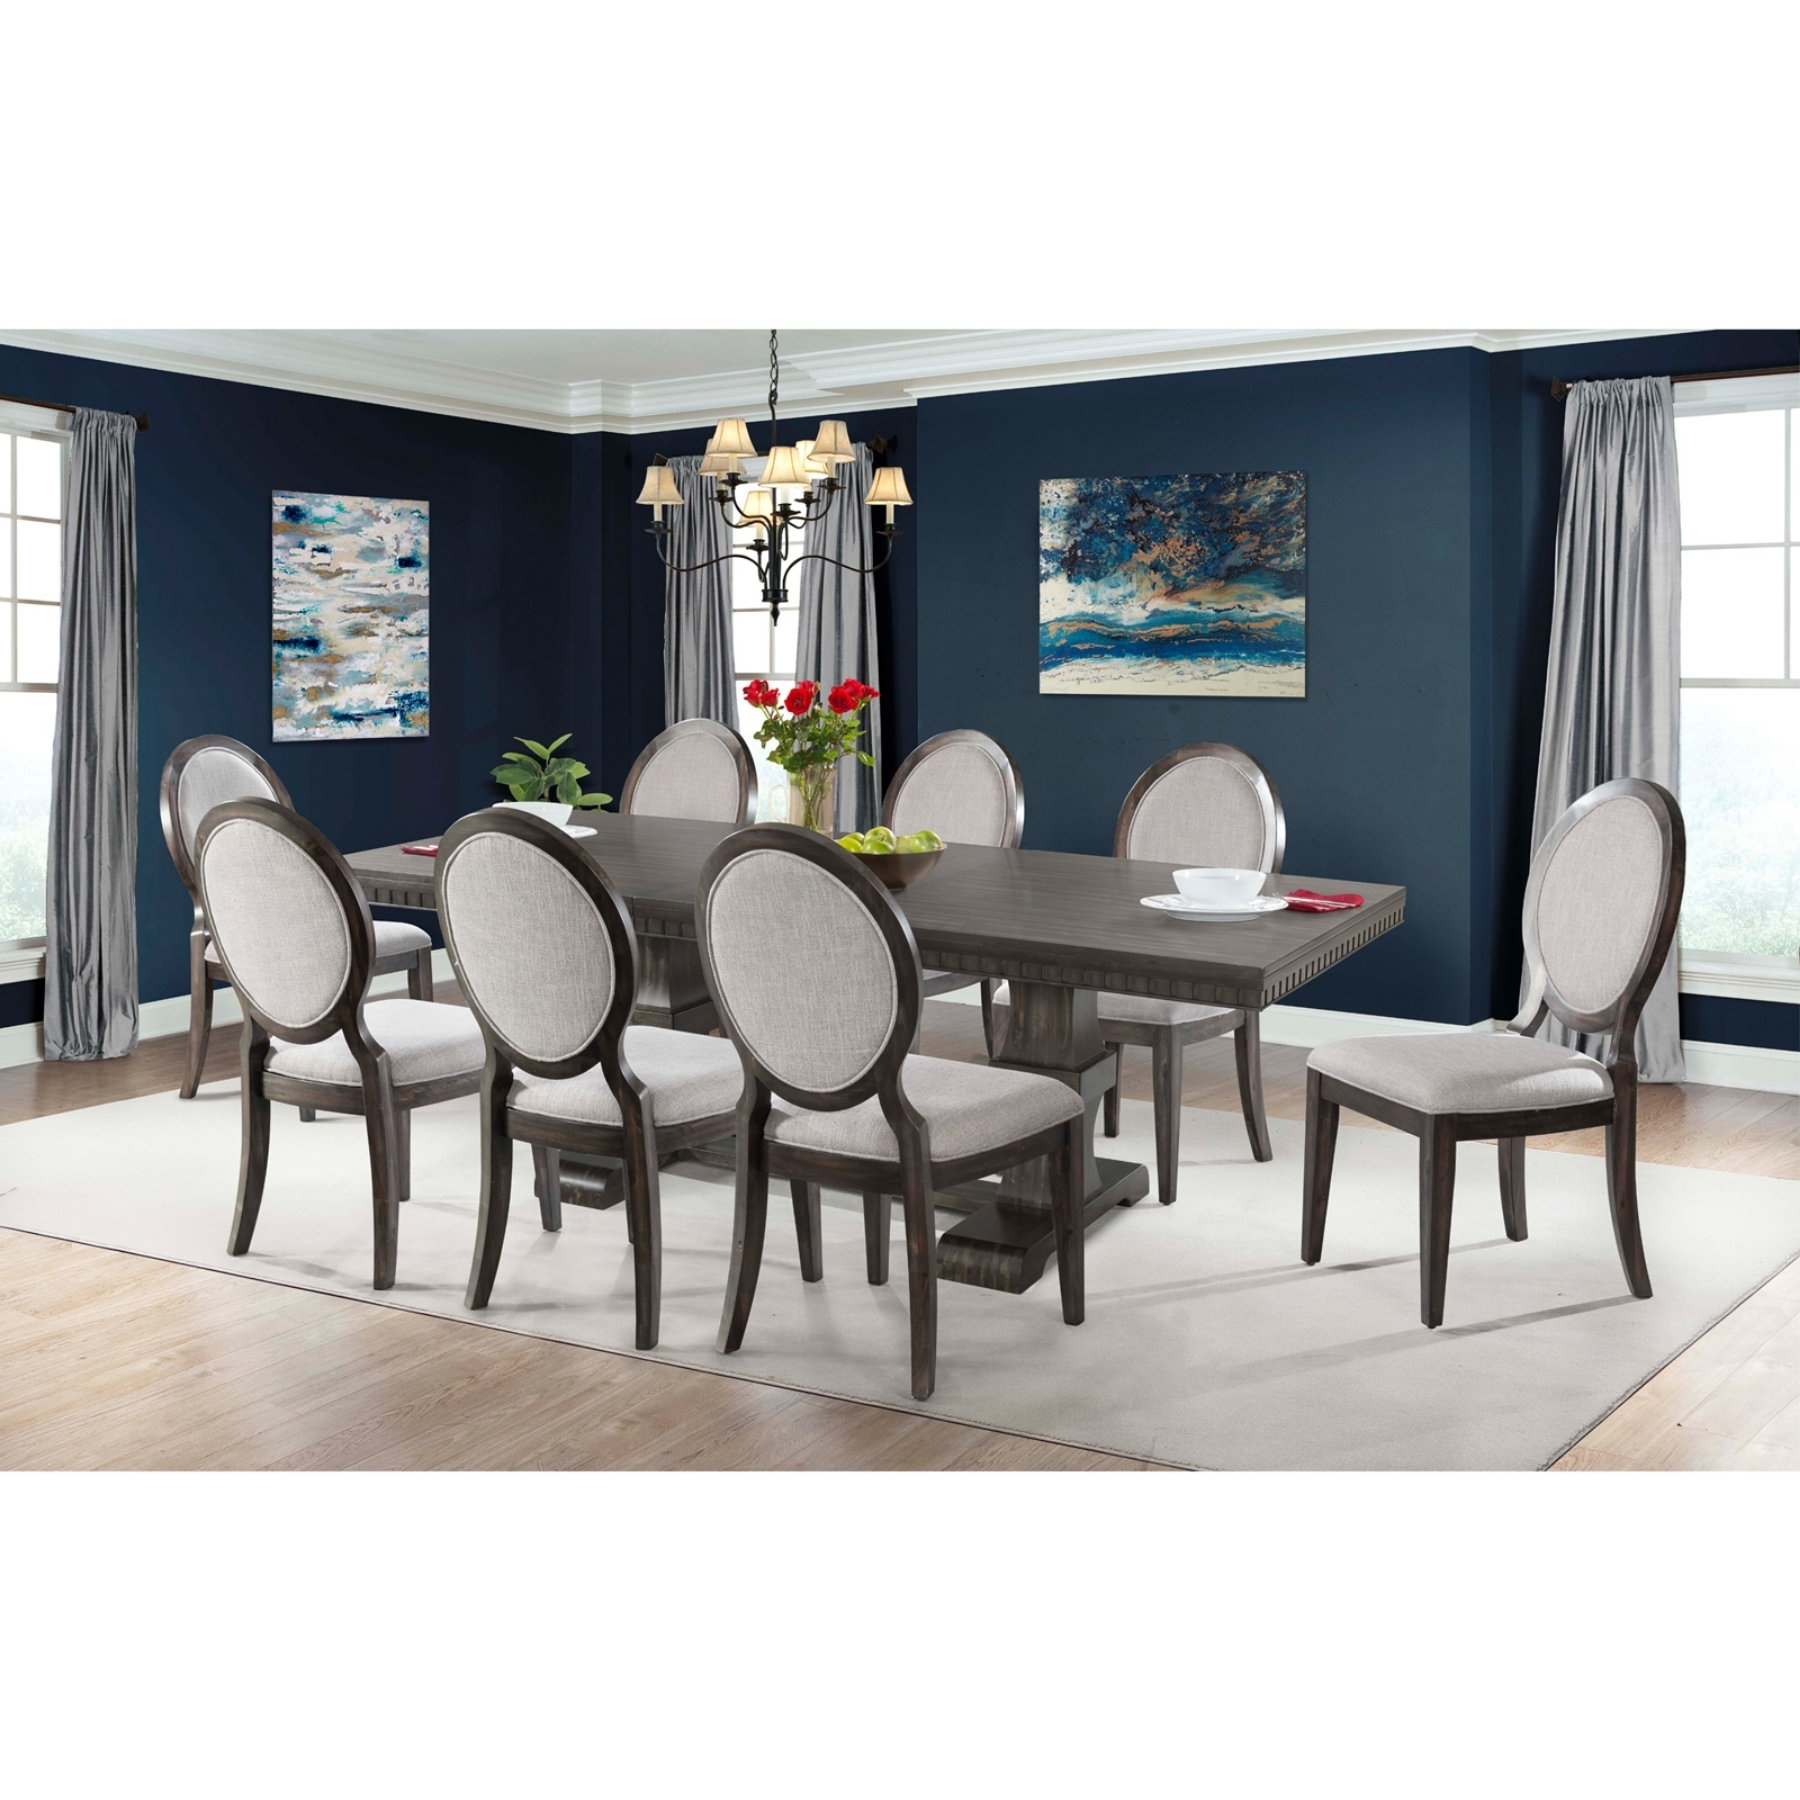 Candice Ii 7 Piece Extension Rectangular Dining Sets With Slat Back Side Chairs For Current Picket House Furnishings Steele 9 Piece Extension Dining Table Set (View 4 of 25)